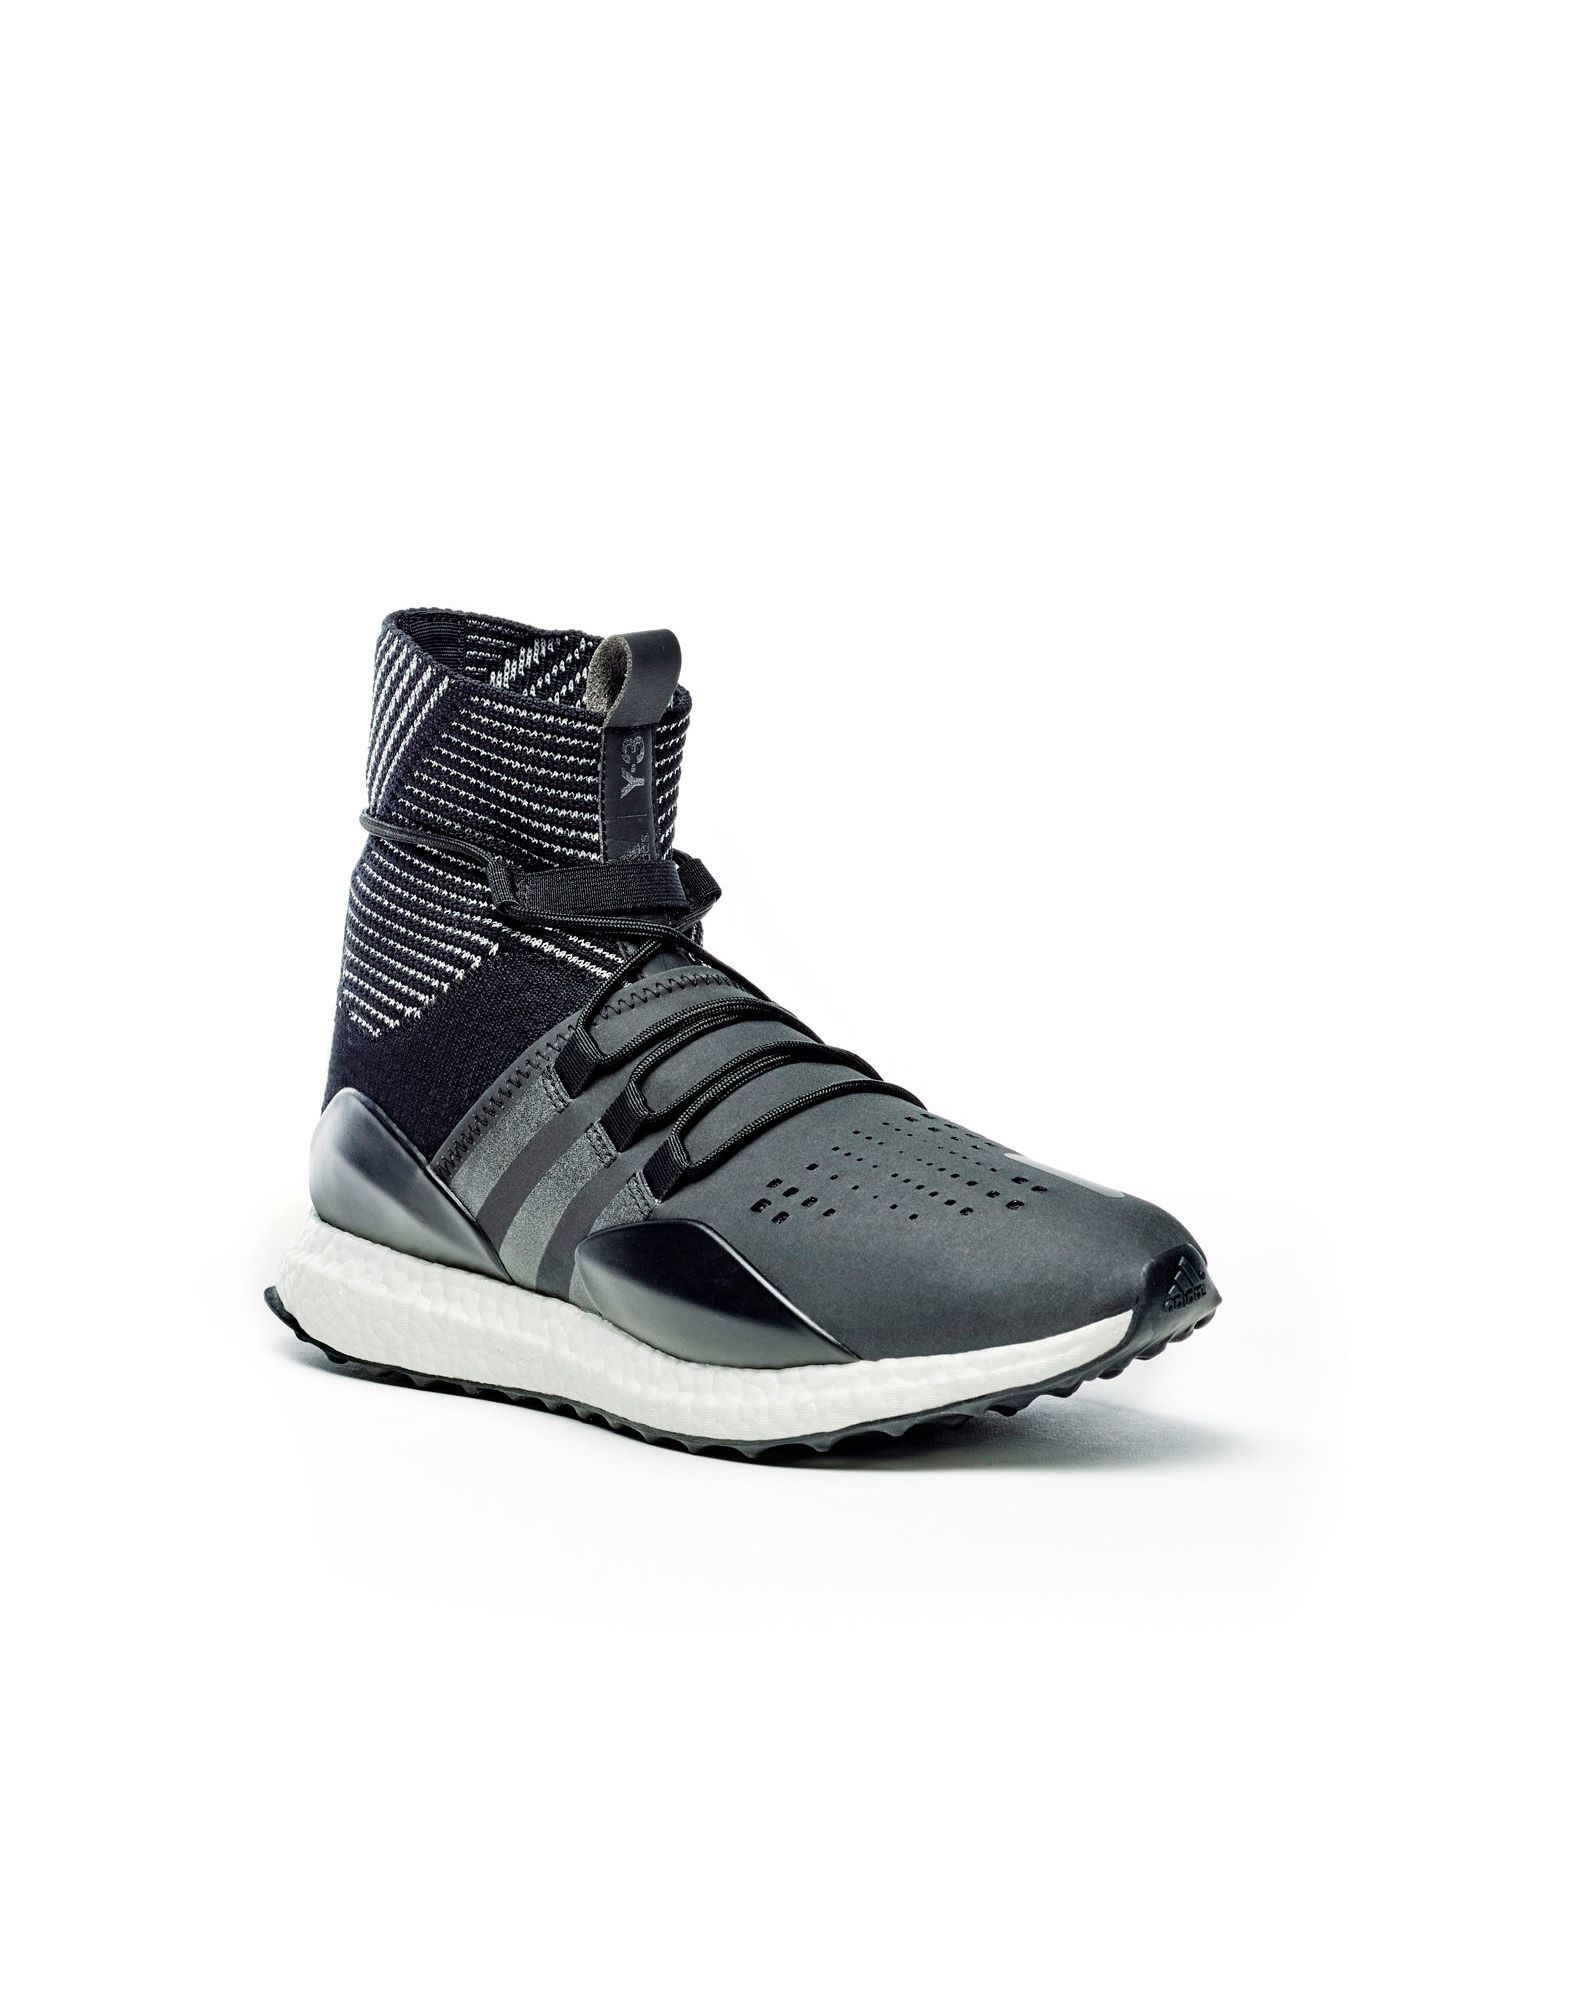 new product cea72 52611 Y-3 SPORT APPROACH REFLECT Shoes man Y-3 adidas